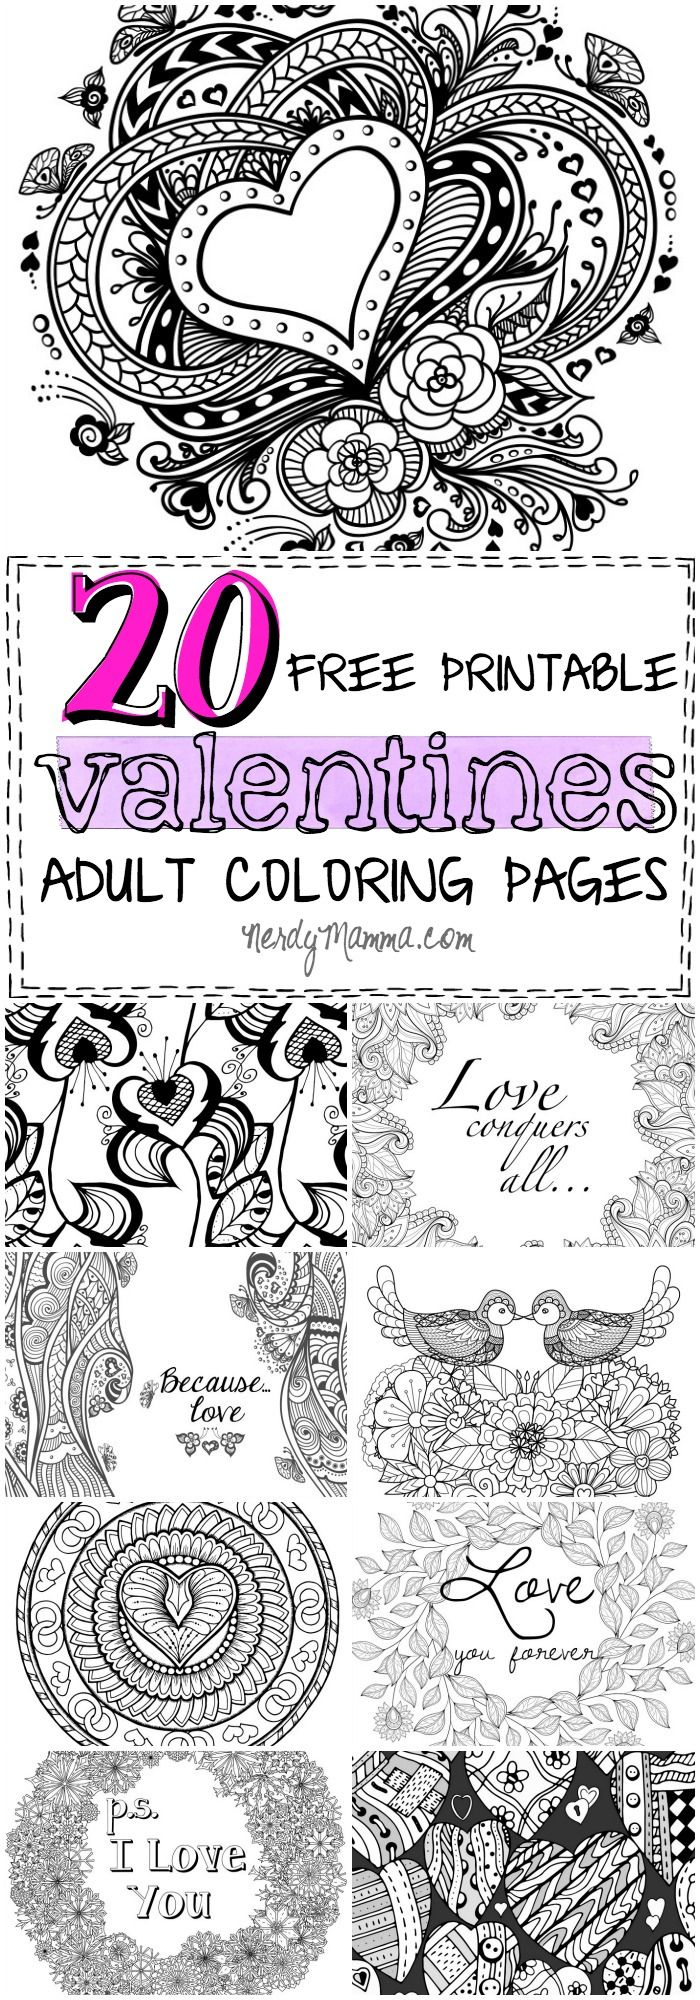 Free coloring pages for the elderly - These 20 Valentines Free Printable Adult Coloring Pages Are So Awesome I Love Coloring And